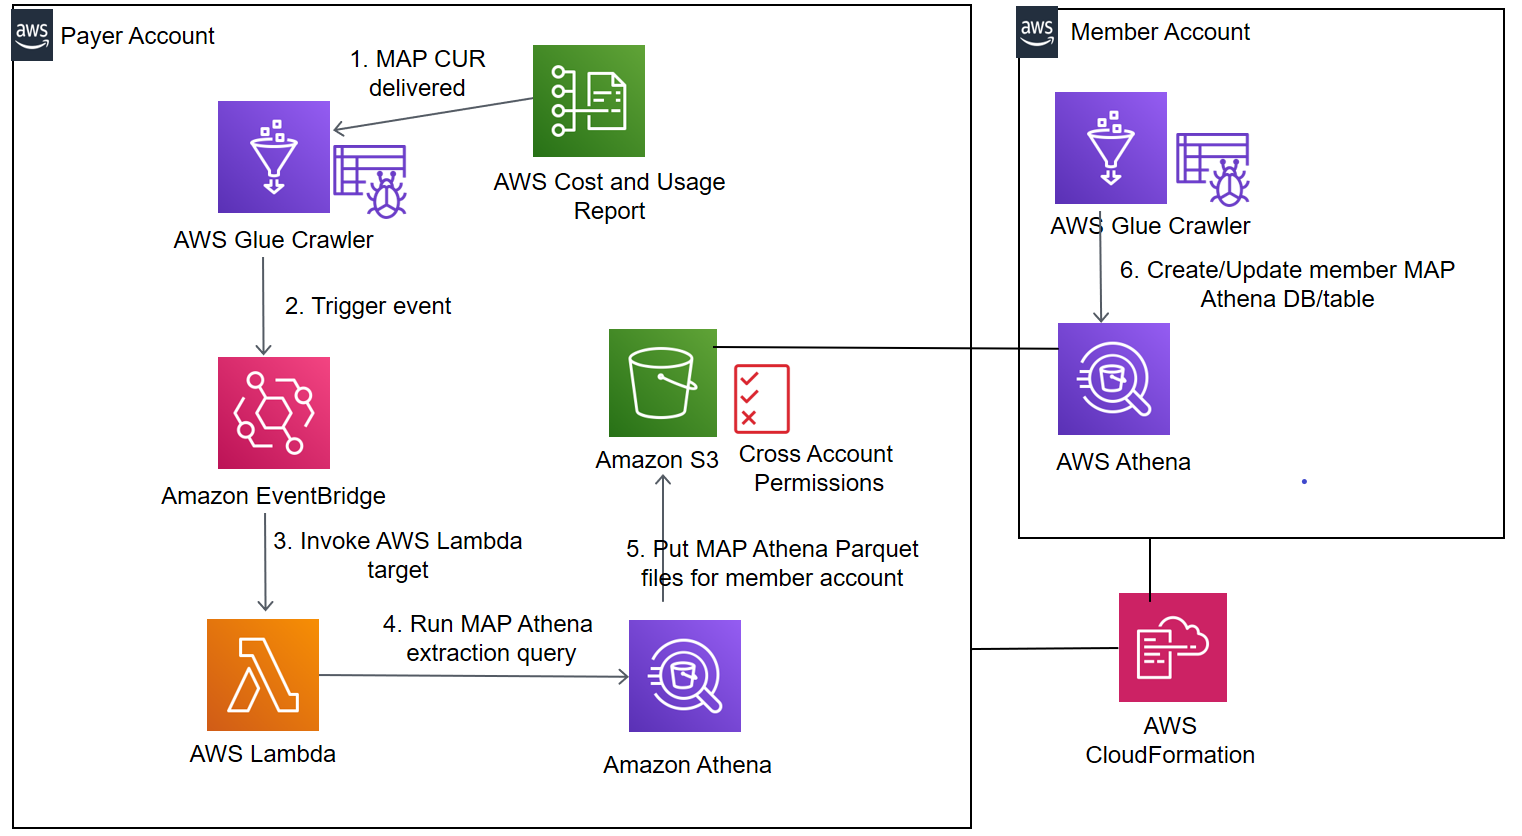 Interaction between solution components, including AWS Glue crawler, Amazon EventBridge rule, Lambda function, S3 bucket, Amazon Athena, and AWS CloudFormation.